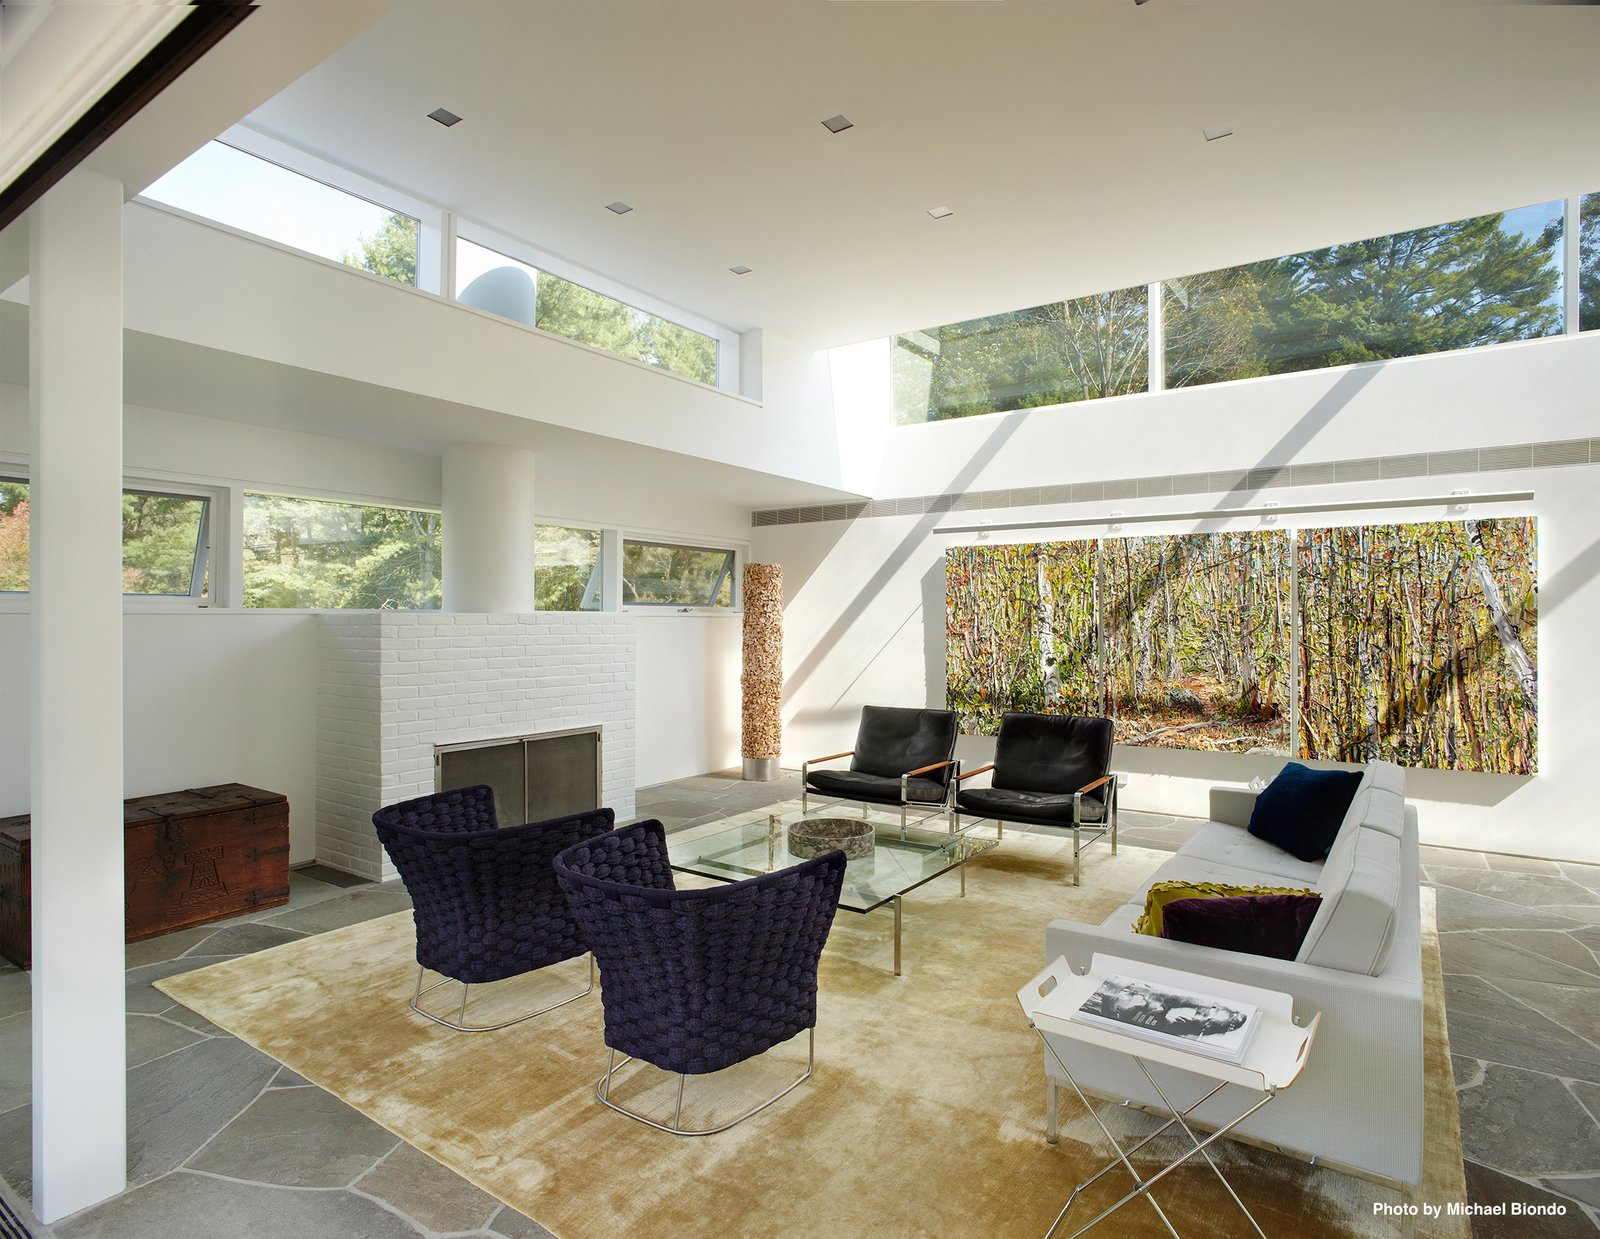 The ceiling heights were preserved throughout much of the house while skylights were placed all around the perimeter of the main structure. The living room holds an original fireplace (shown here).  Marcel Breuer's New Canaan Home by Dwell